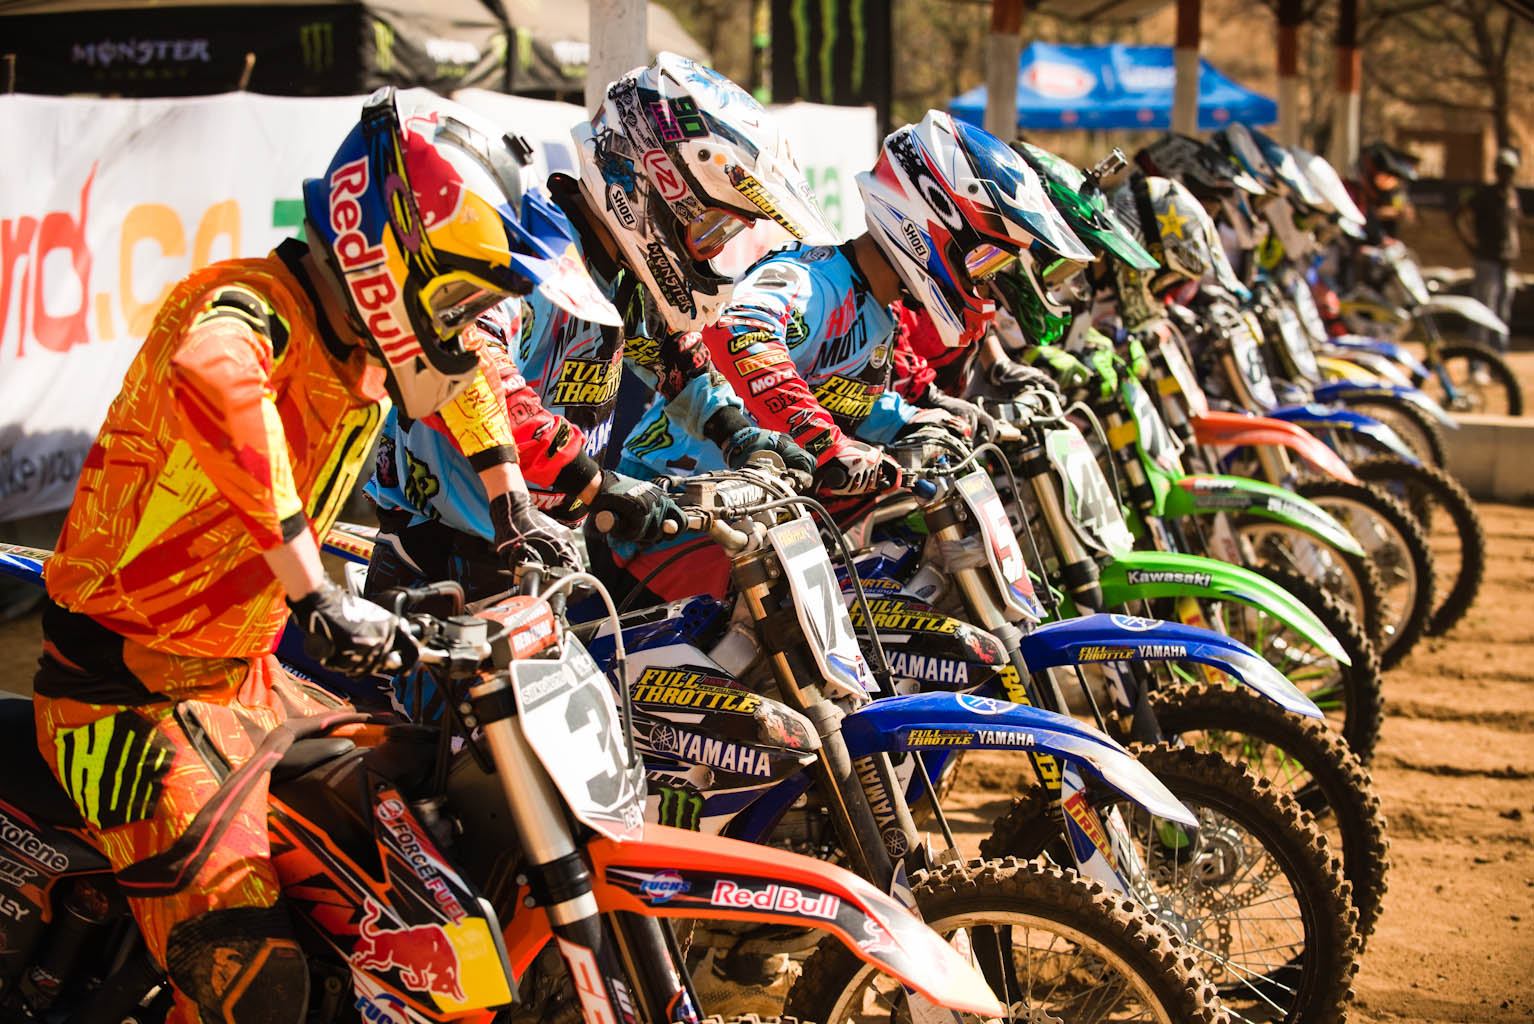 The final round of the 2014 Monster Energy TRP Distributors Motocross Nationals saw some insane racing